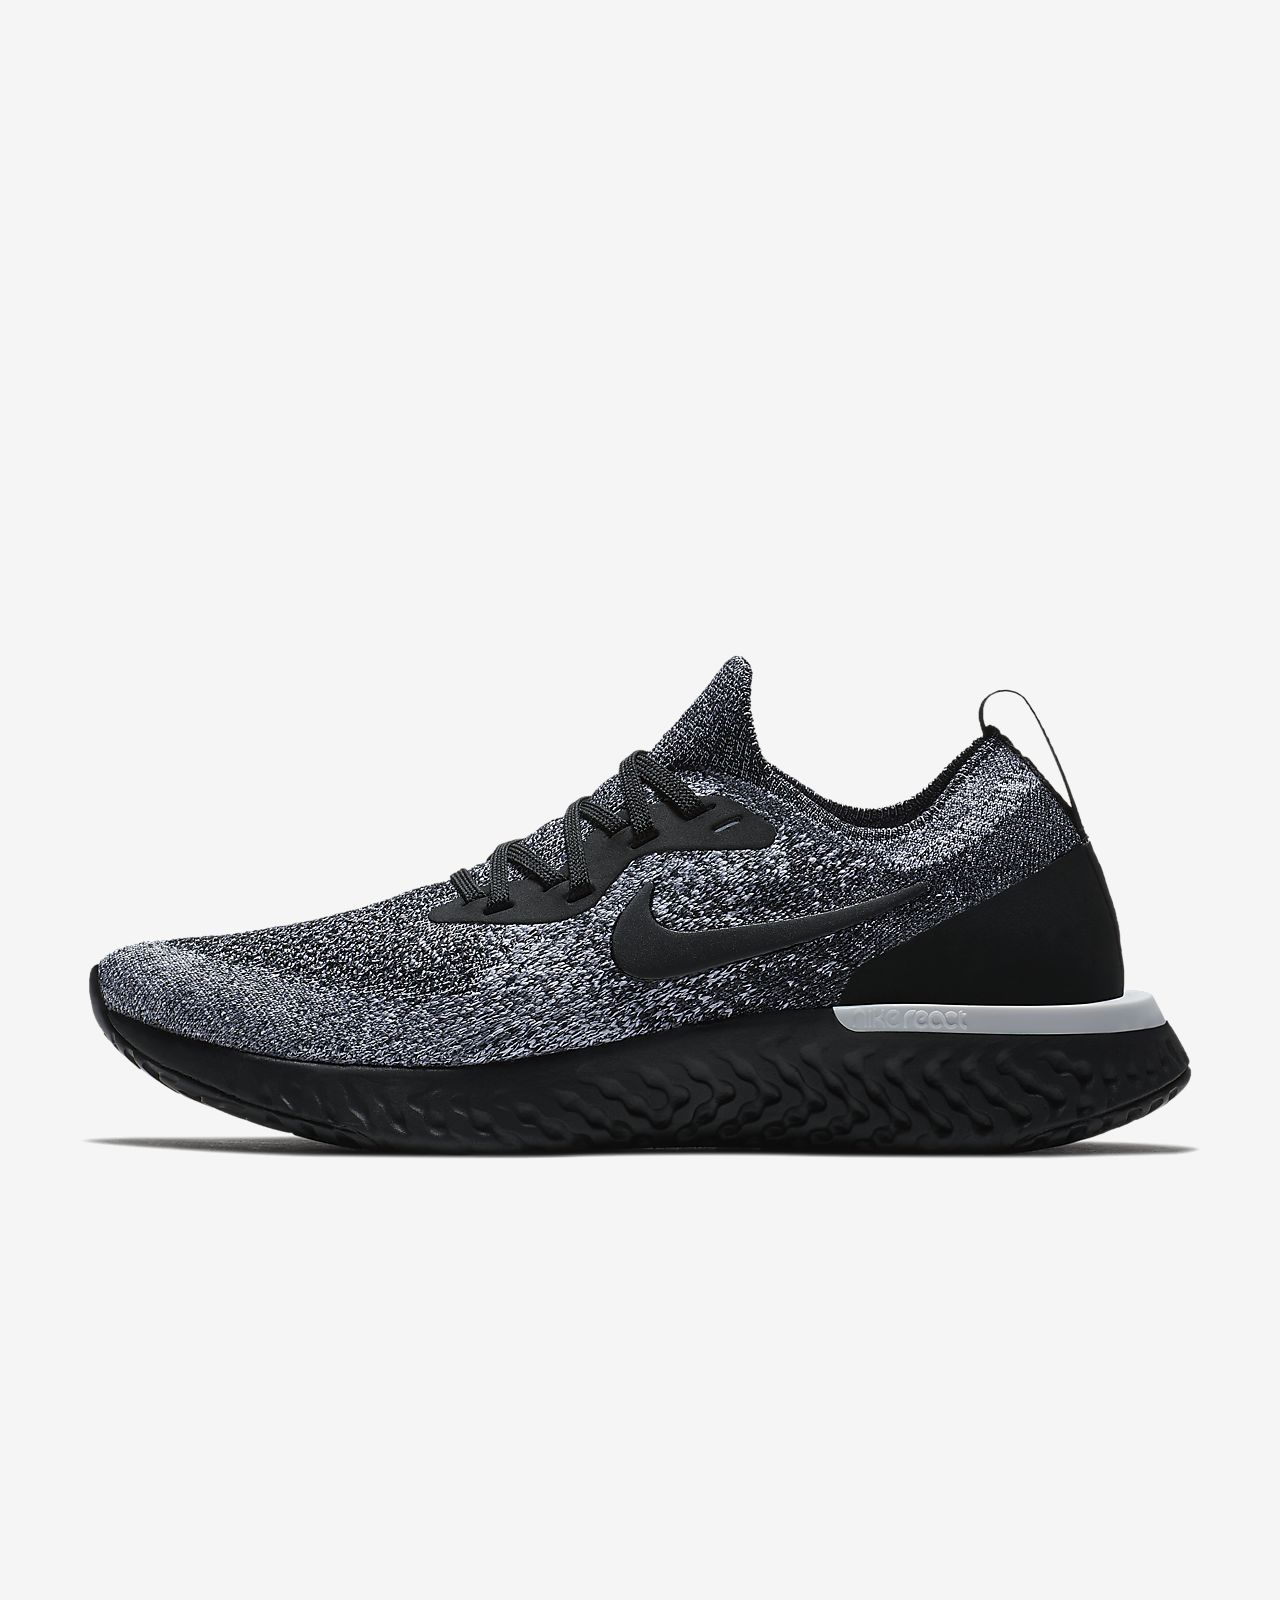 check out bf0d1 d9bad Womens Running Shoe. Nike Epic React Flyknit 1